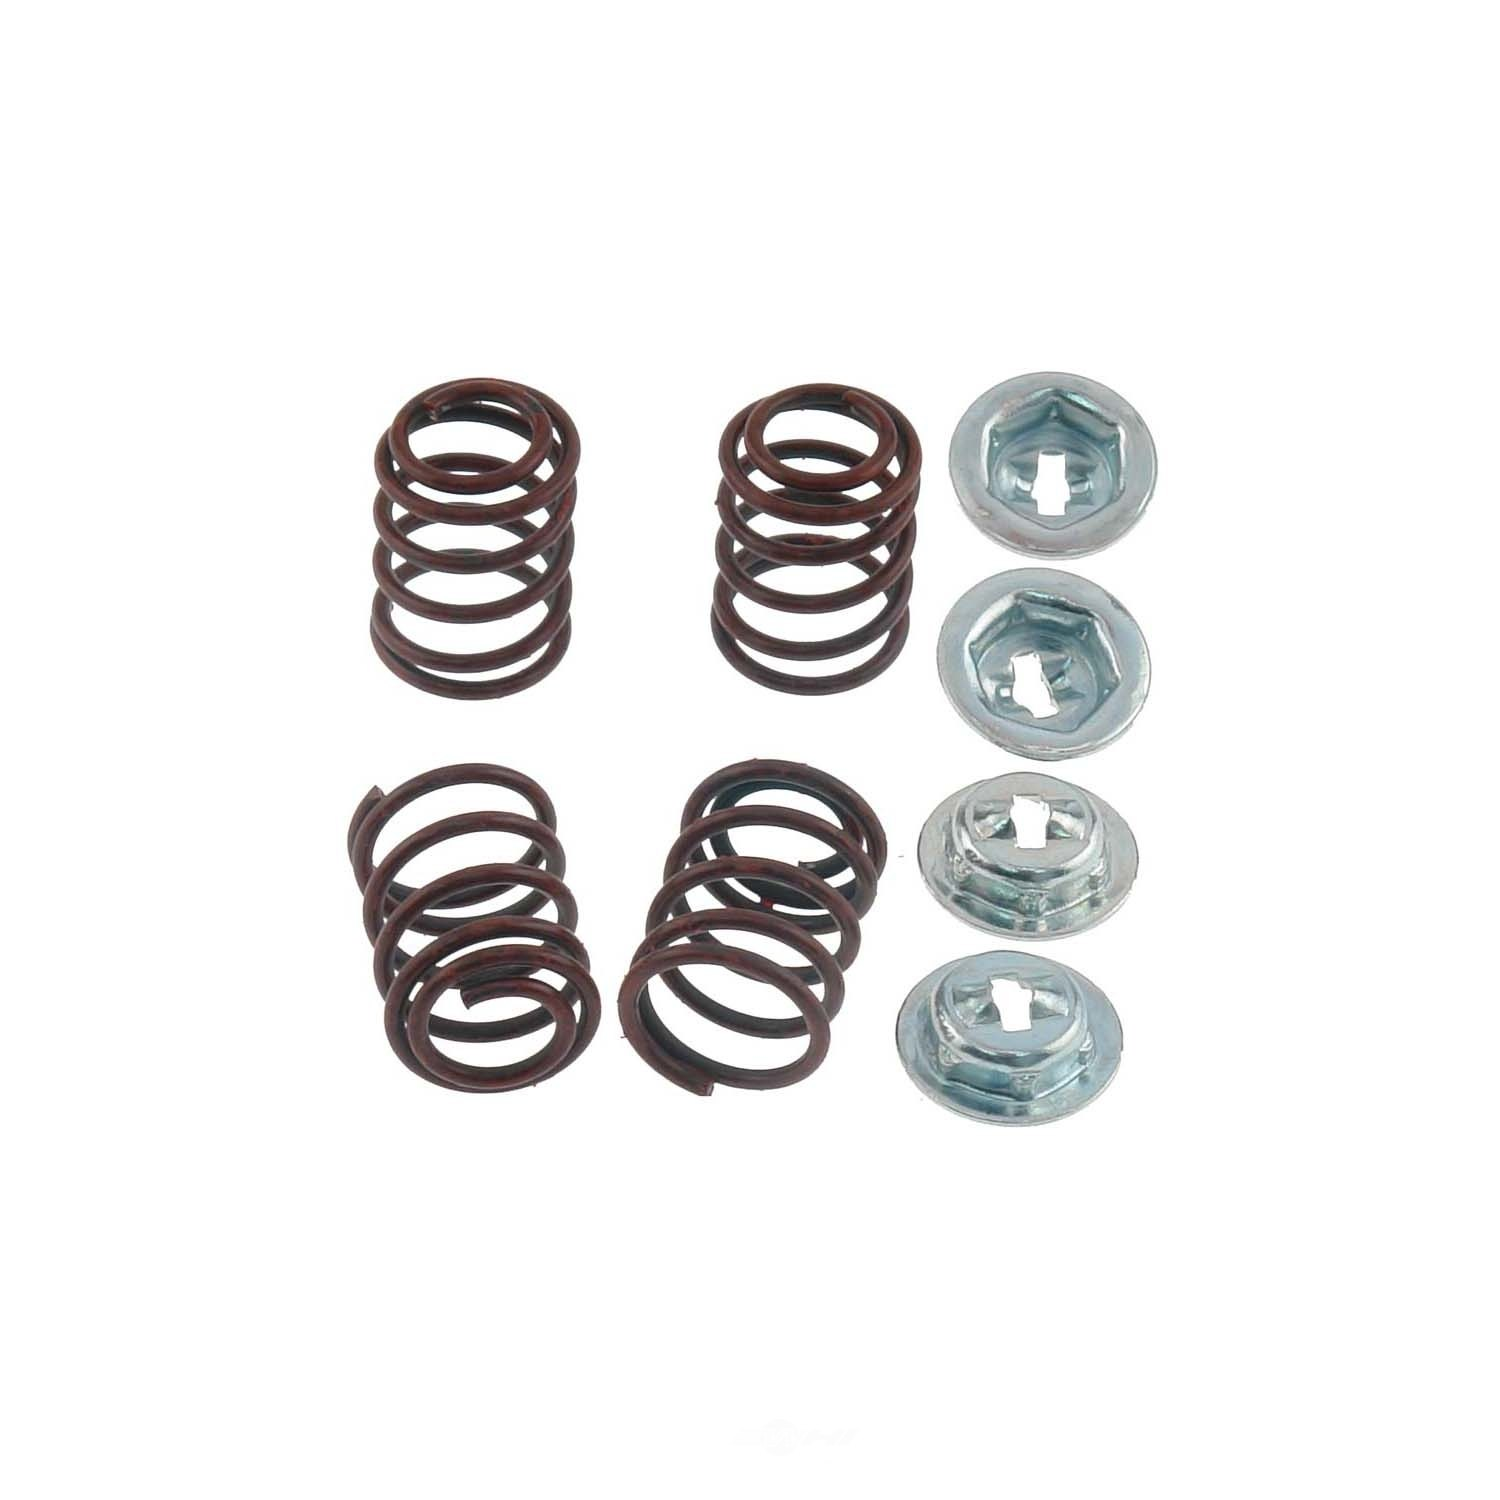 CARLSON QUALITY BRAKE PARTS - Drum Brake Hold Down Spring - CRL H1163-2